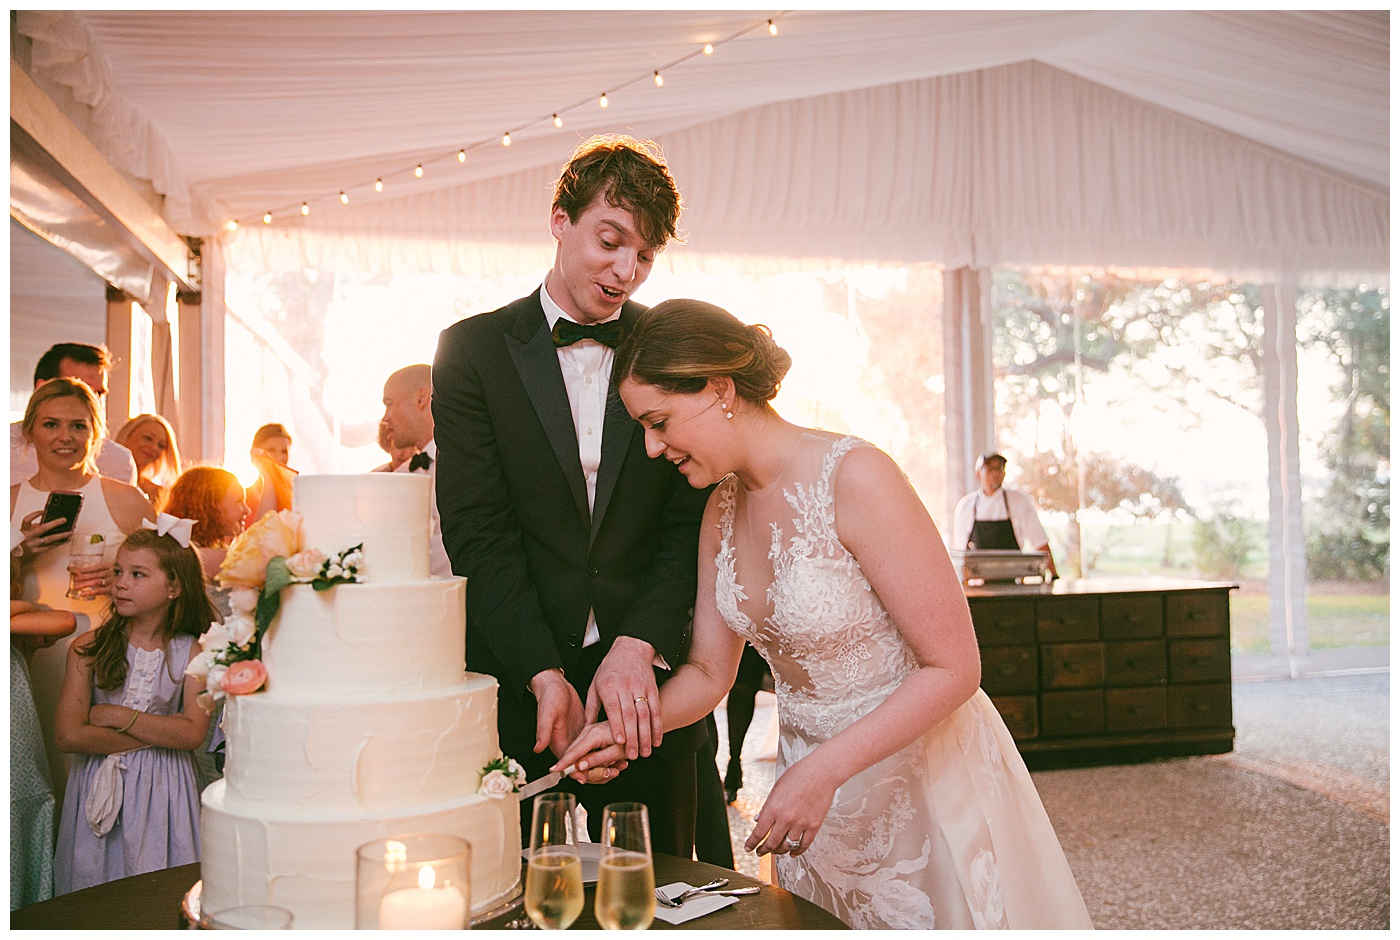 newlyweds cutting their wedding cake during reception